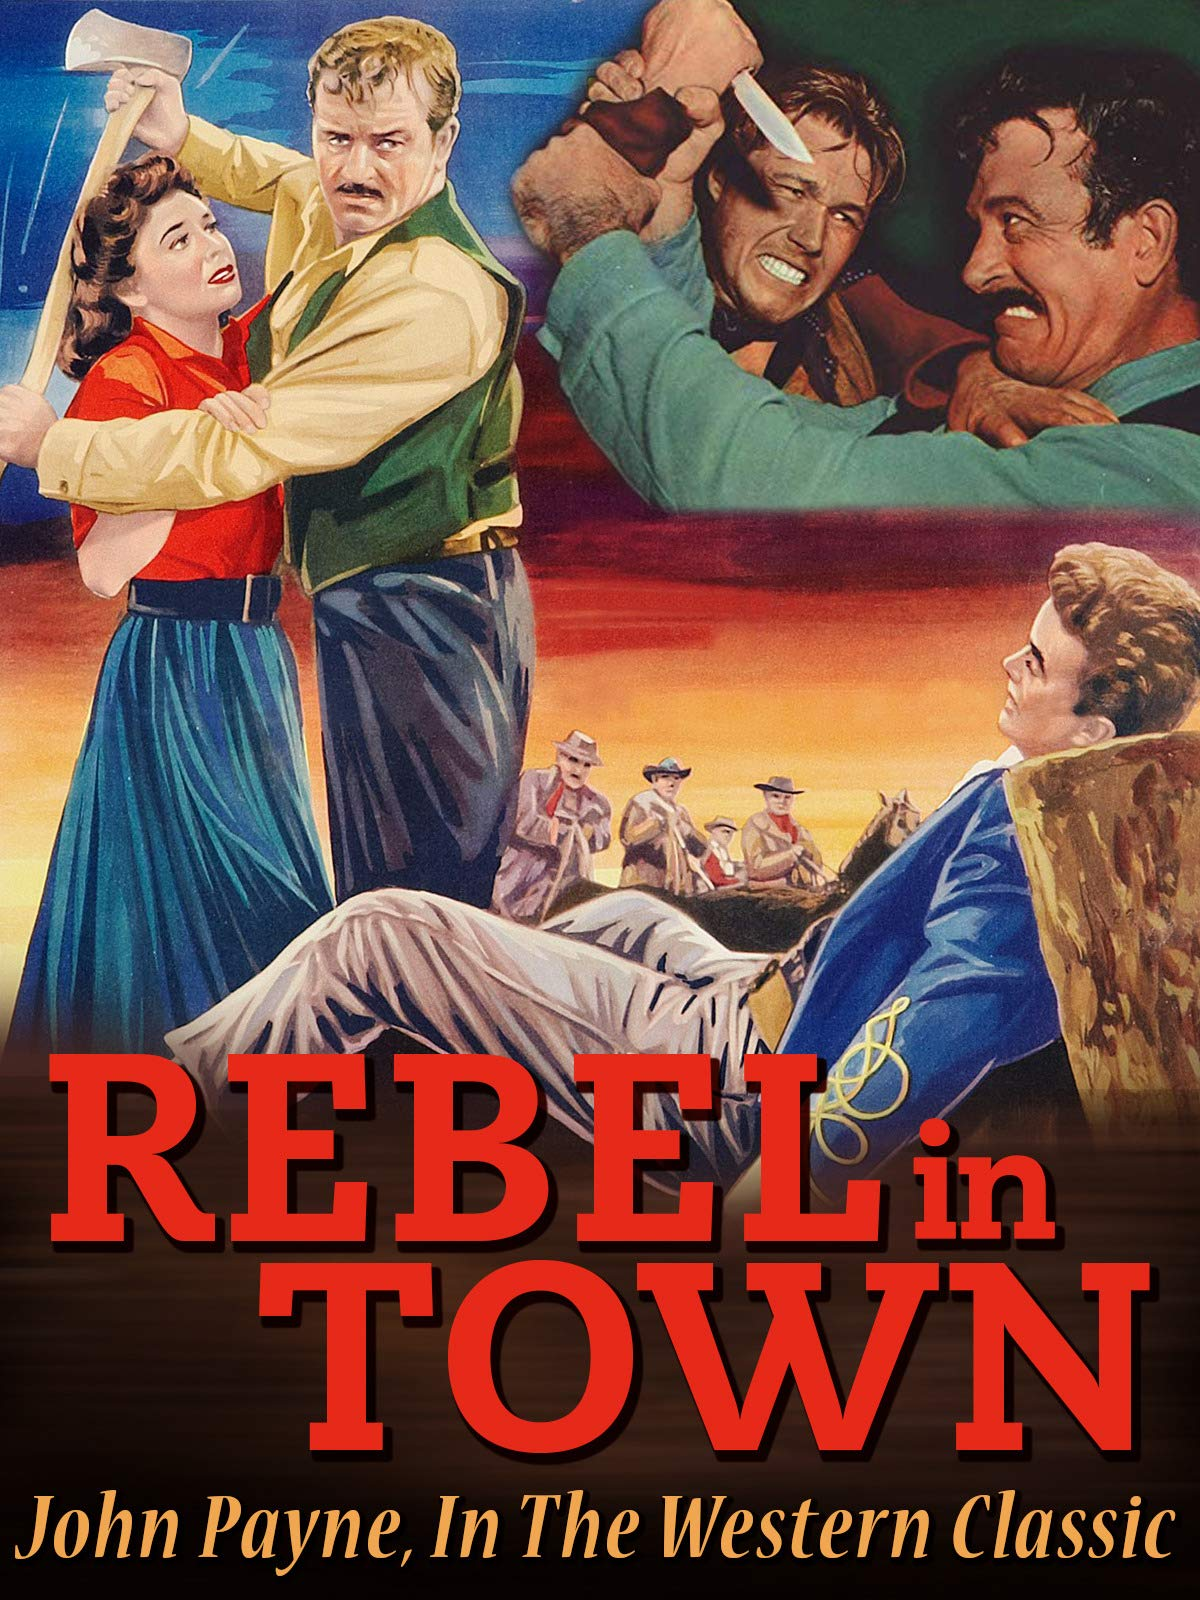 Rebel In Town - John Payne, In The Western Classic